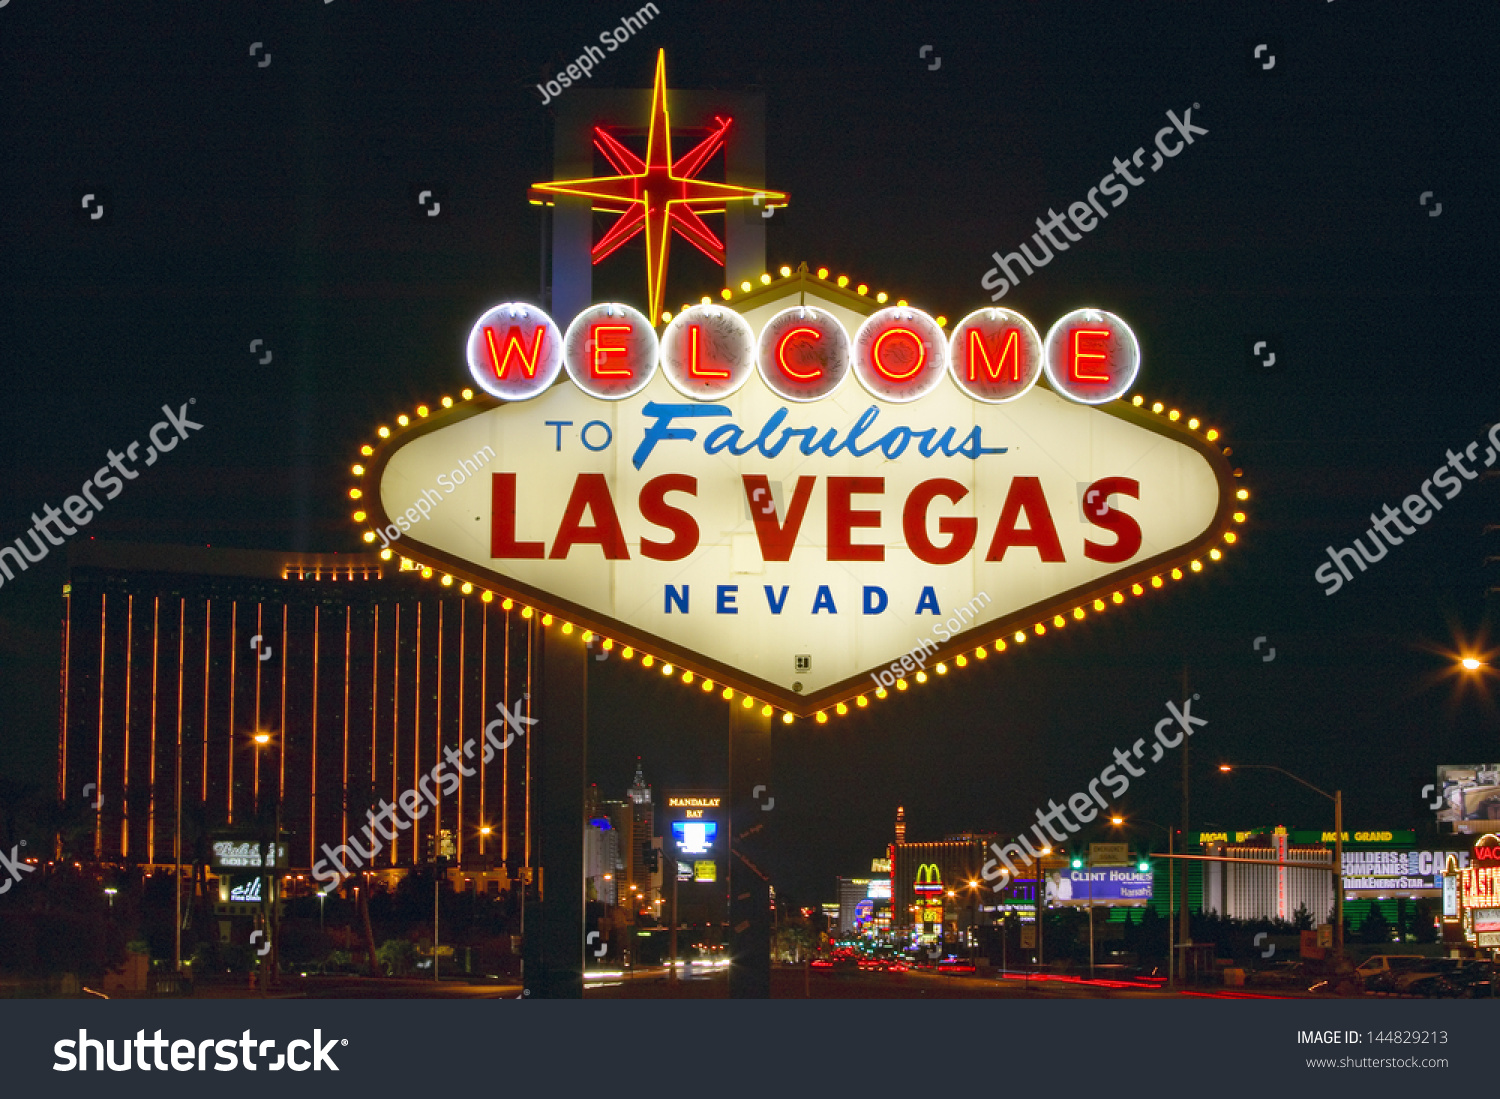 welcome fabulous las vegas sign night lagerfoto 144829213 shutterstock. Black Bedroom Furniture Sets. Home Design Ideas